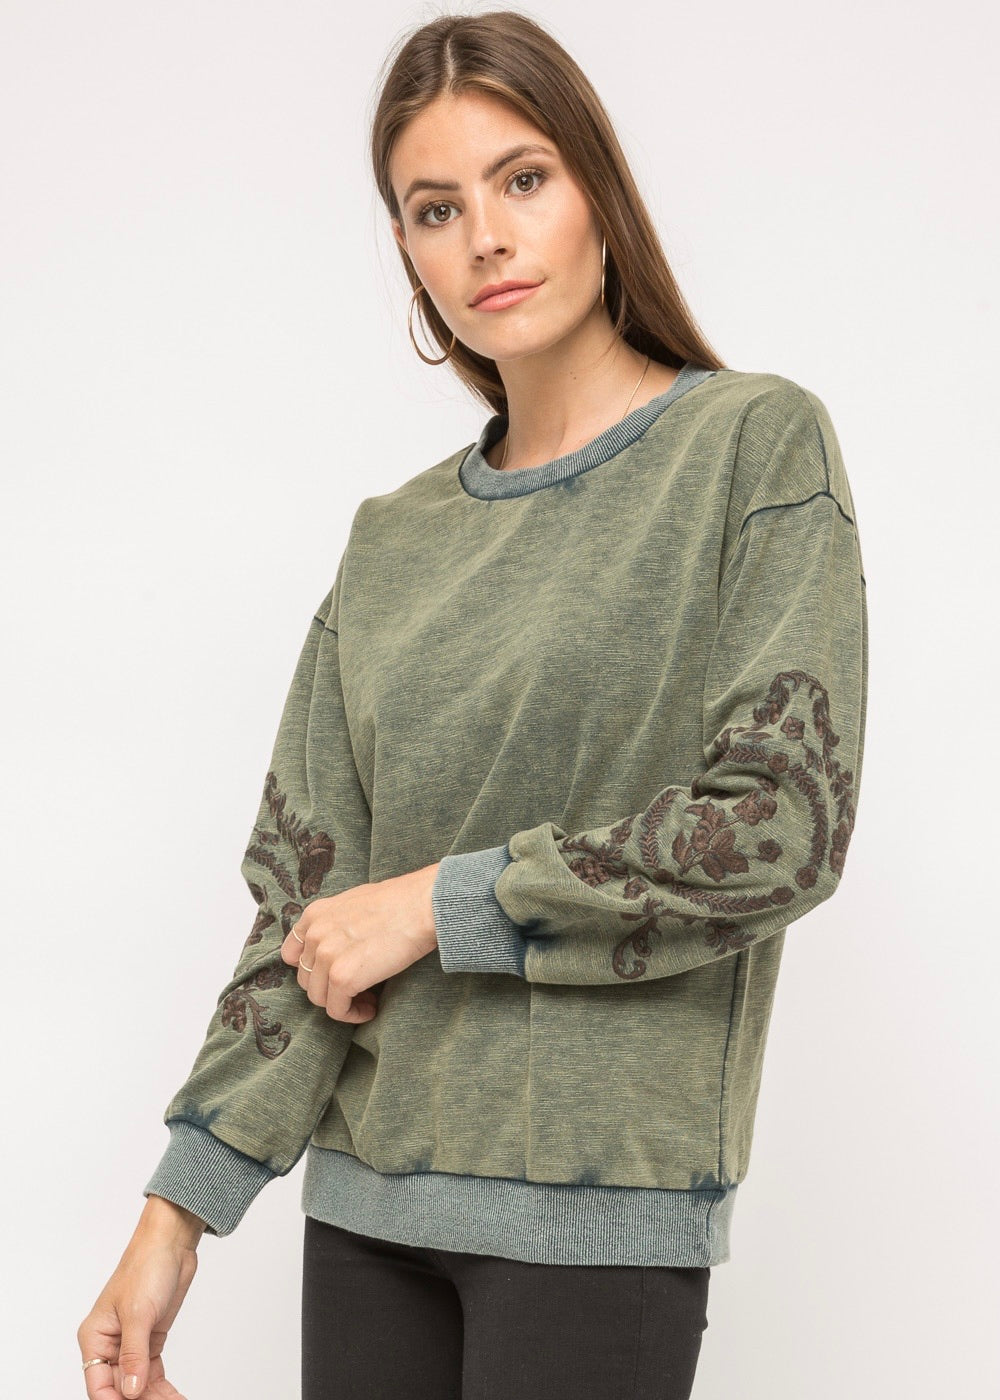 Couch Queen Pullover